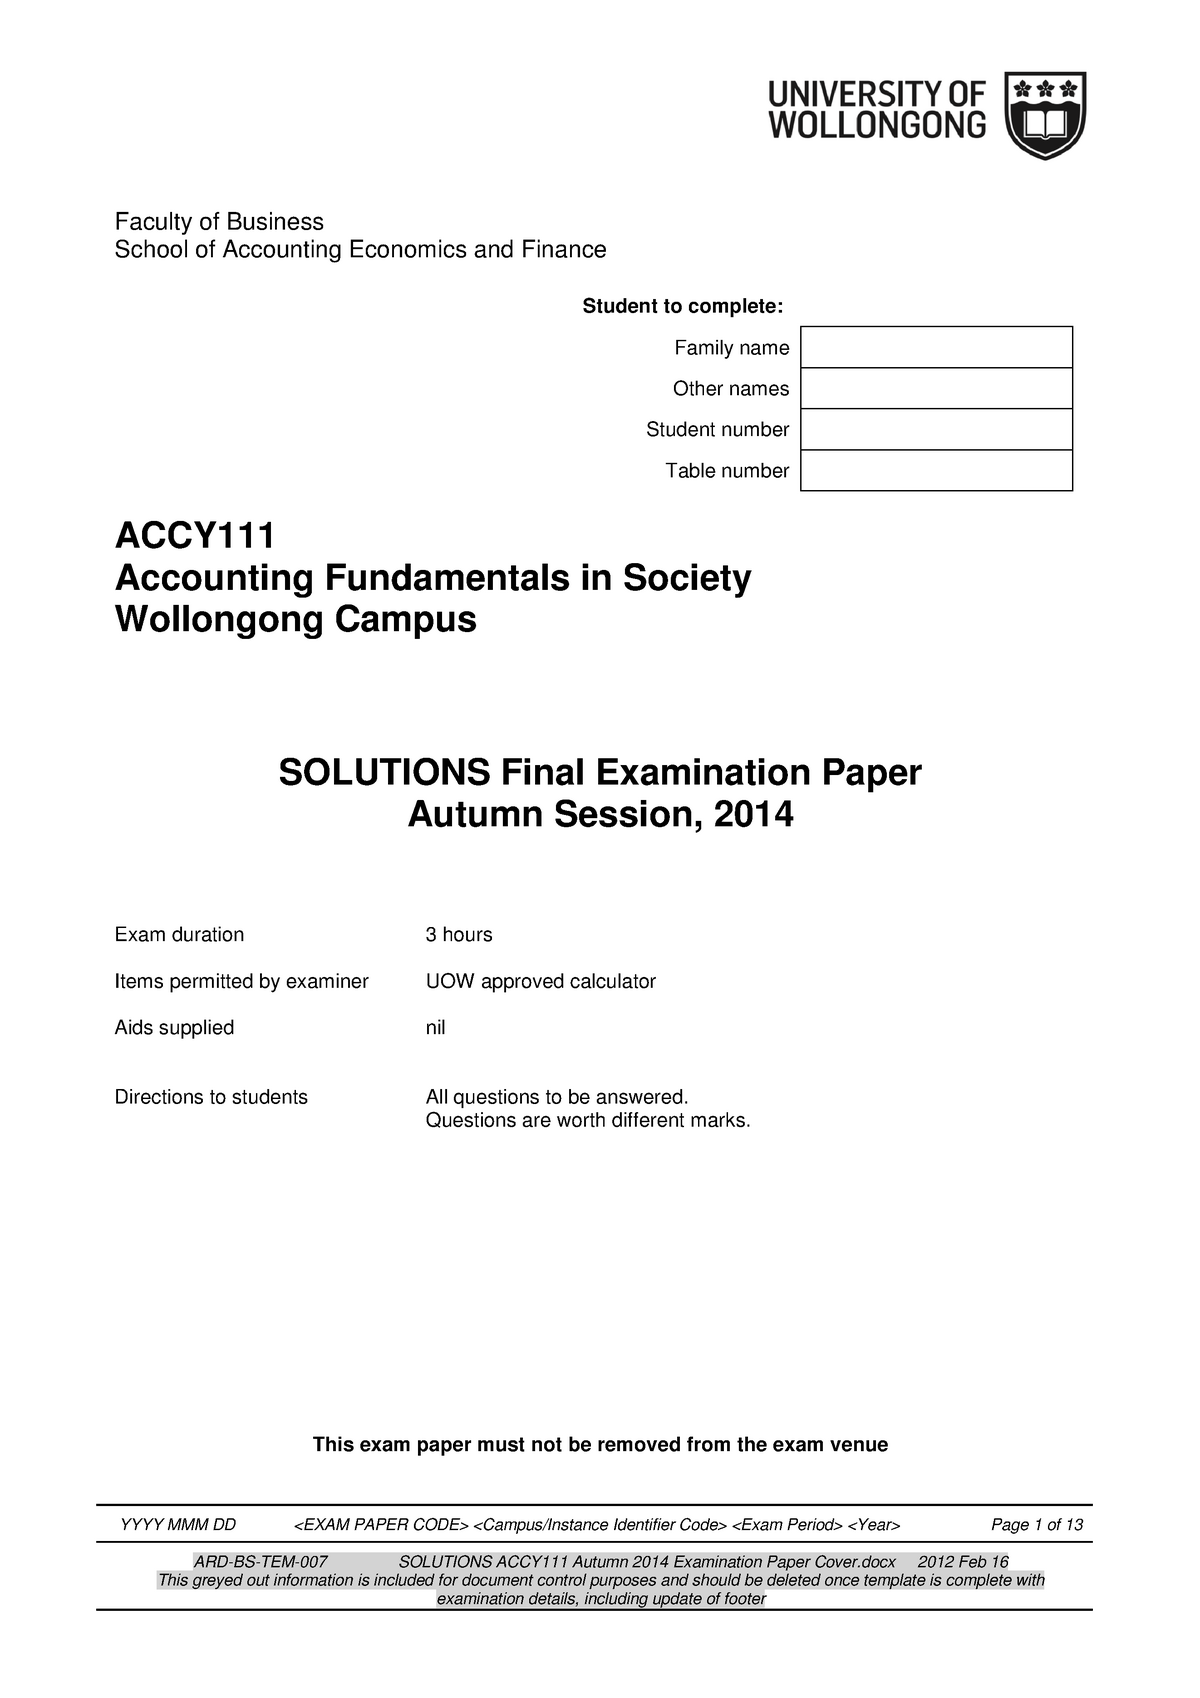 Exam 2014 - ACCY111: Accounting Fundamentals In Society - StuDocu